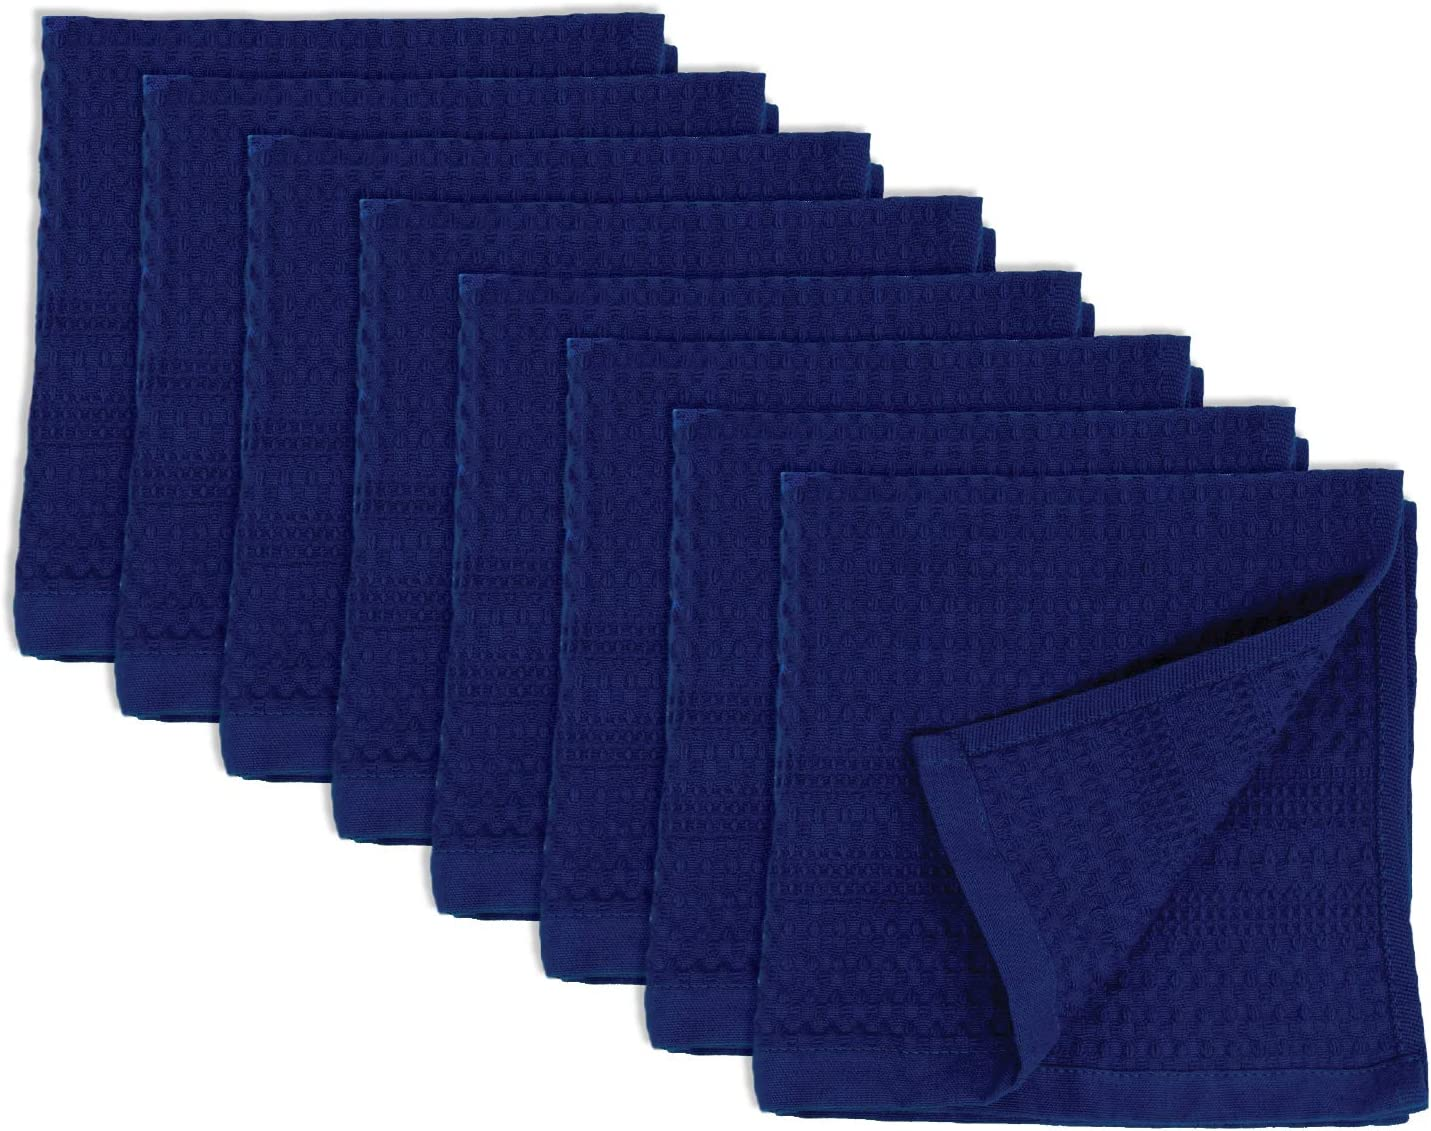 Gilden Tree Premium 4 Pc Washcloth Set 100/% Natural Cotton Quick Dry Waffle Weave Soft Luxurious Highly Absorbent Fabric Small Face Towel No Lint Fade Resistant Color Indigo